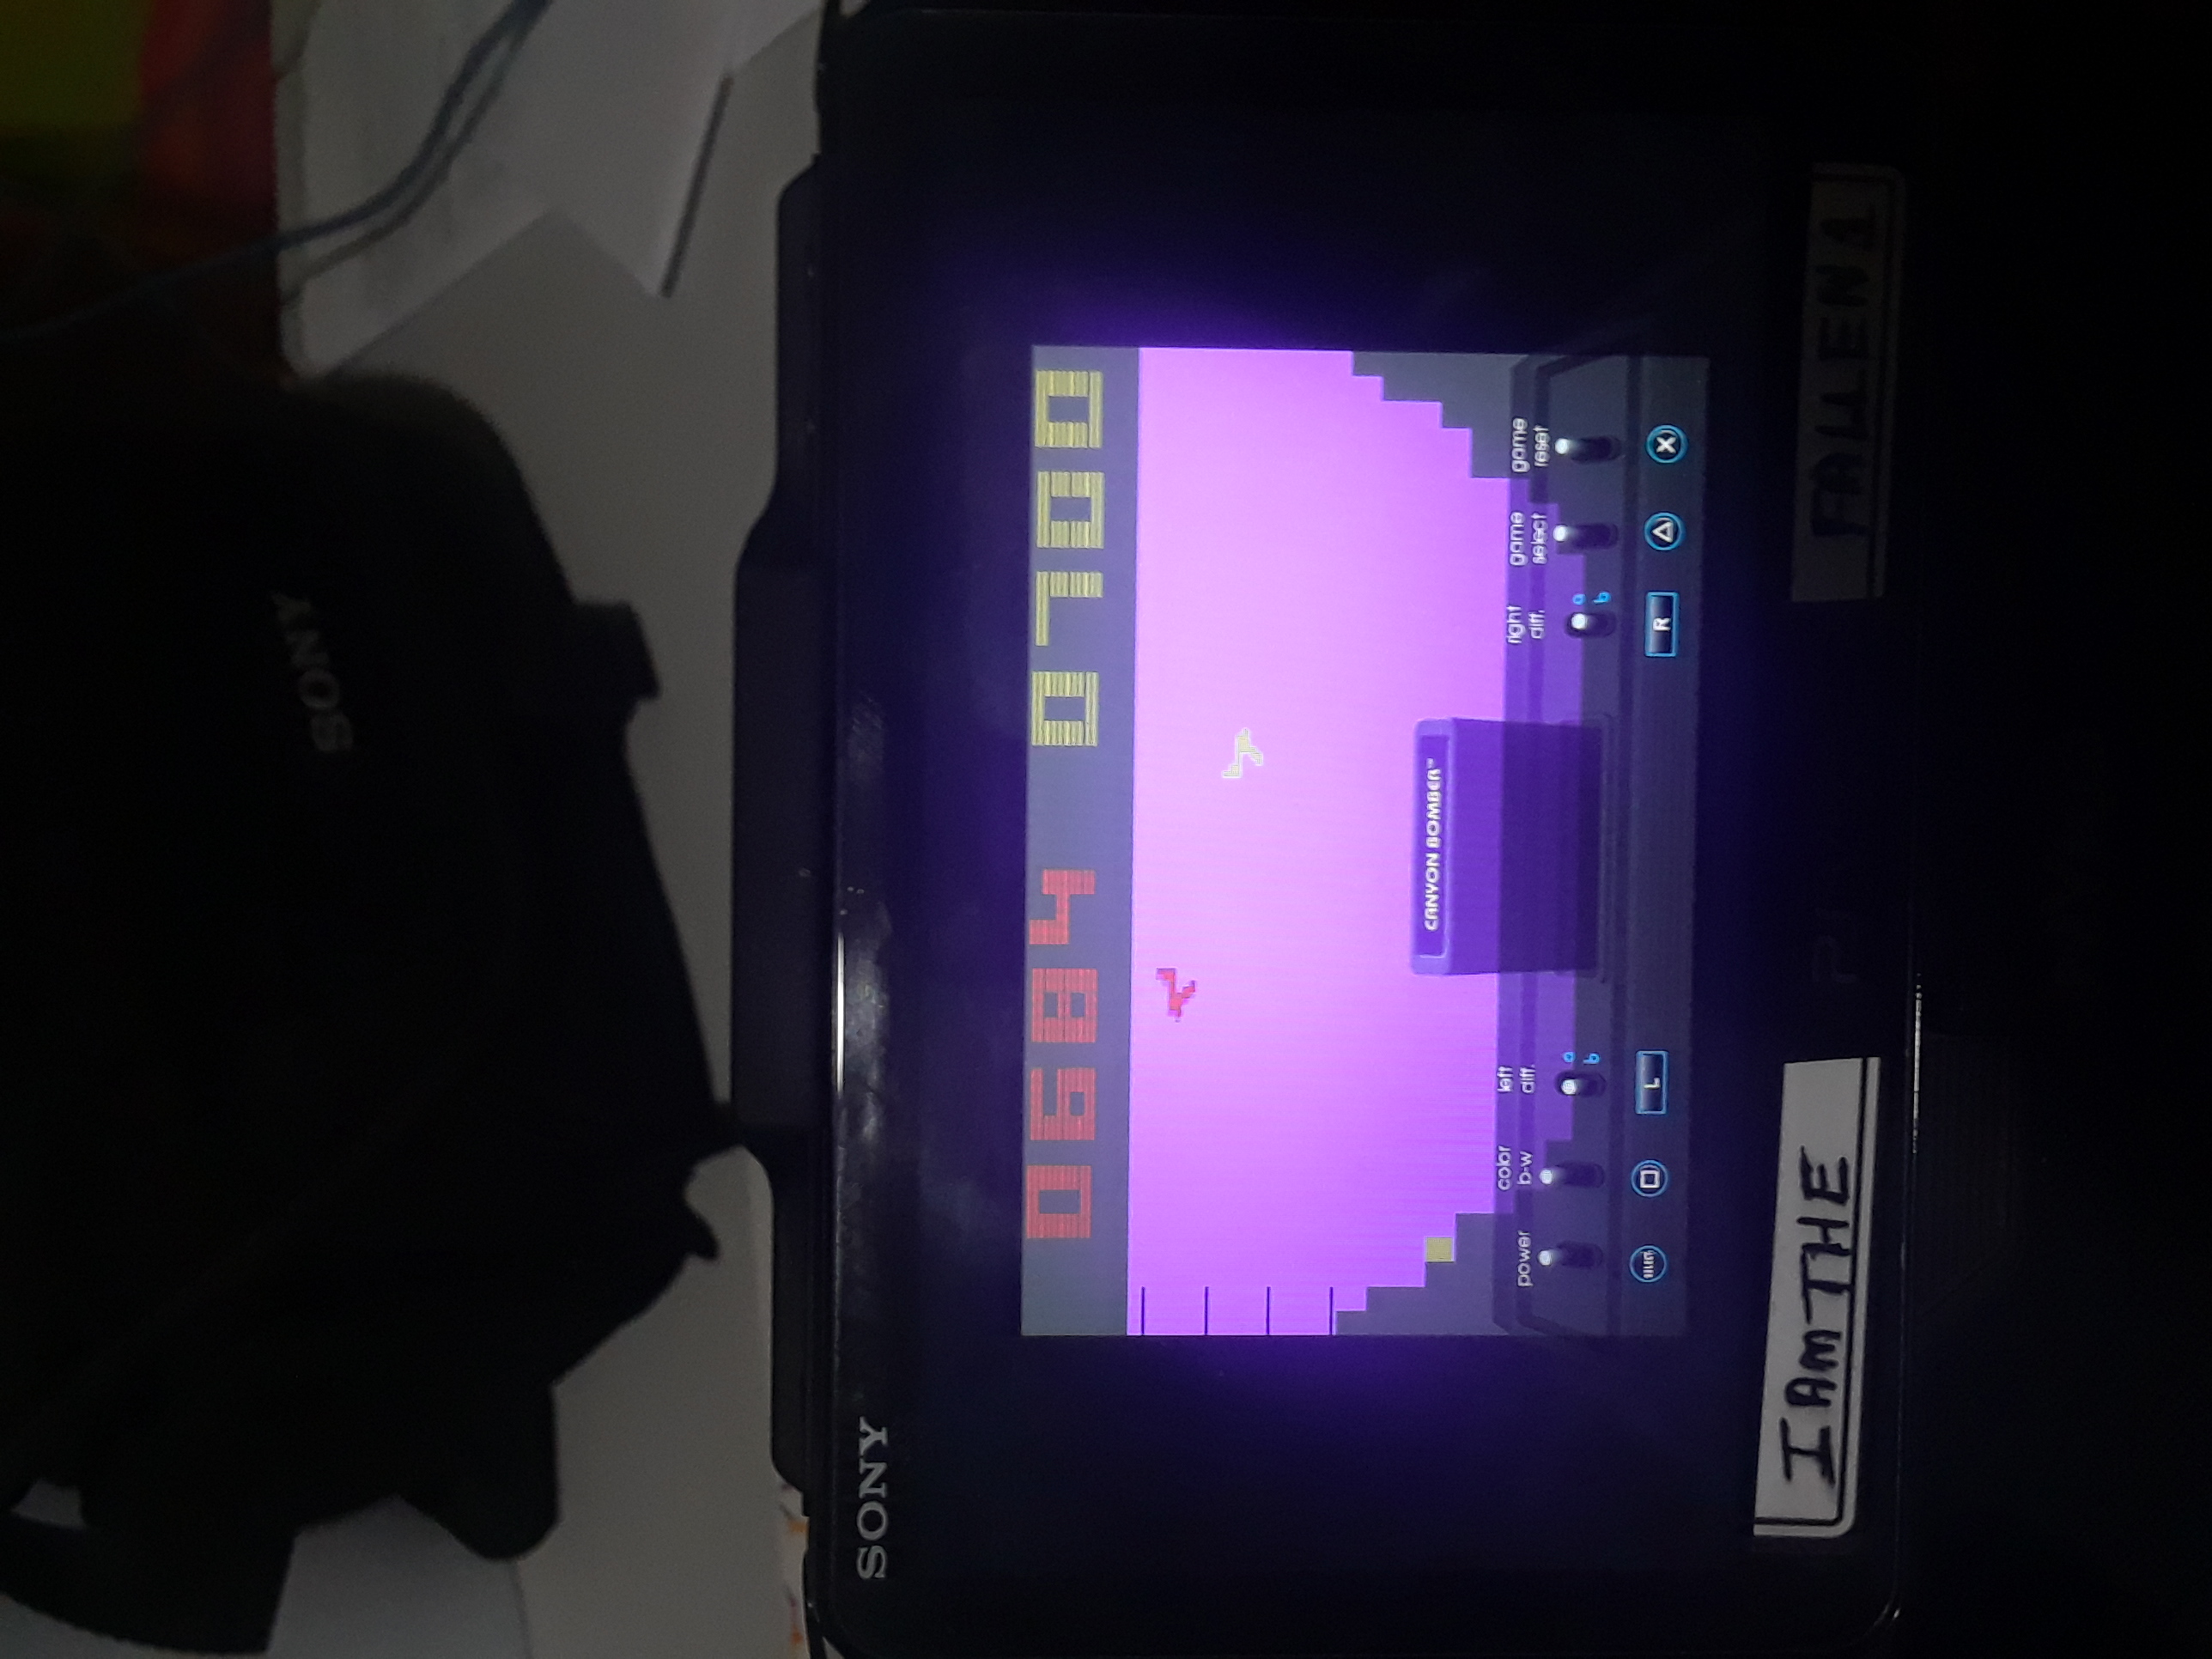 iamthefallen1: Canyon Bomber (Atari 2600 Emulated Novice/B Mode) 700 points on 2019-11-12 21:18:32